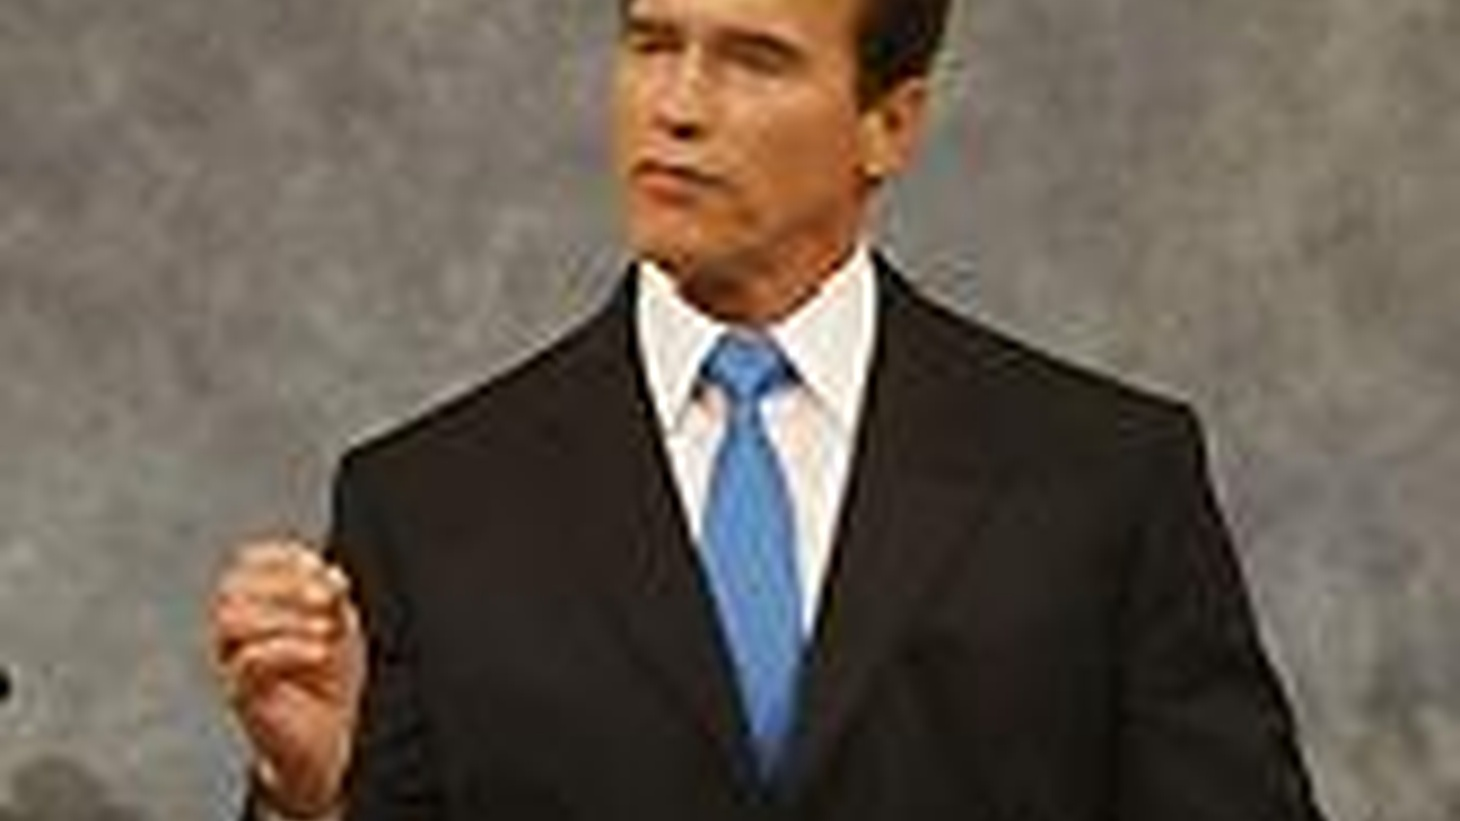 The New Hampshire primaries crowded Arnold Schwarzenegger out of yesterday's news coverage, but the Governor might have been glad not to have the limelight. His address on the State of the State of California was a grim litany of problems he and the legislature have failed to resolve, resulting in a $14 billion deficit.